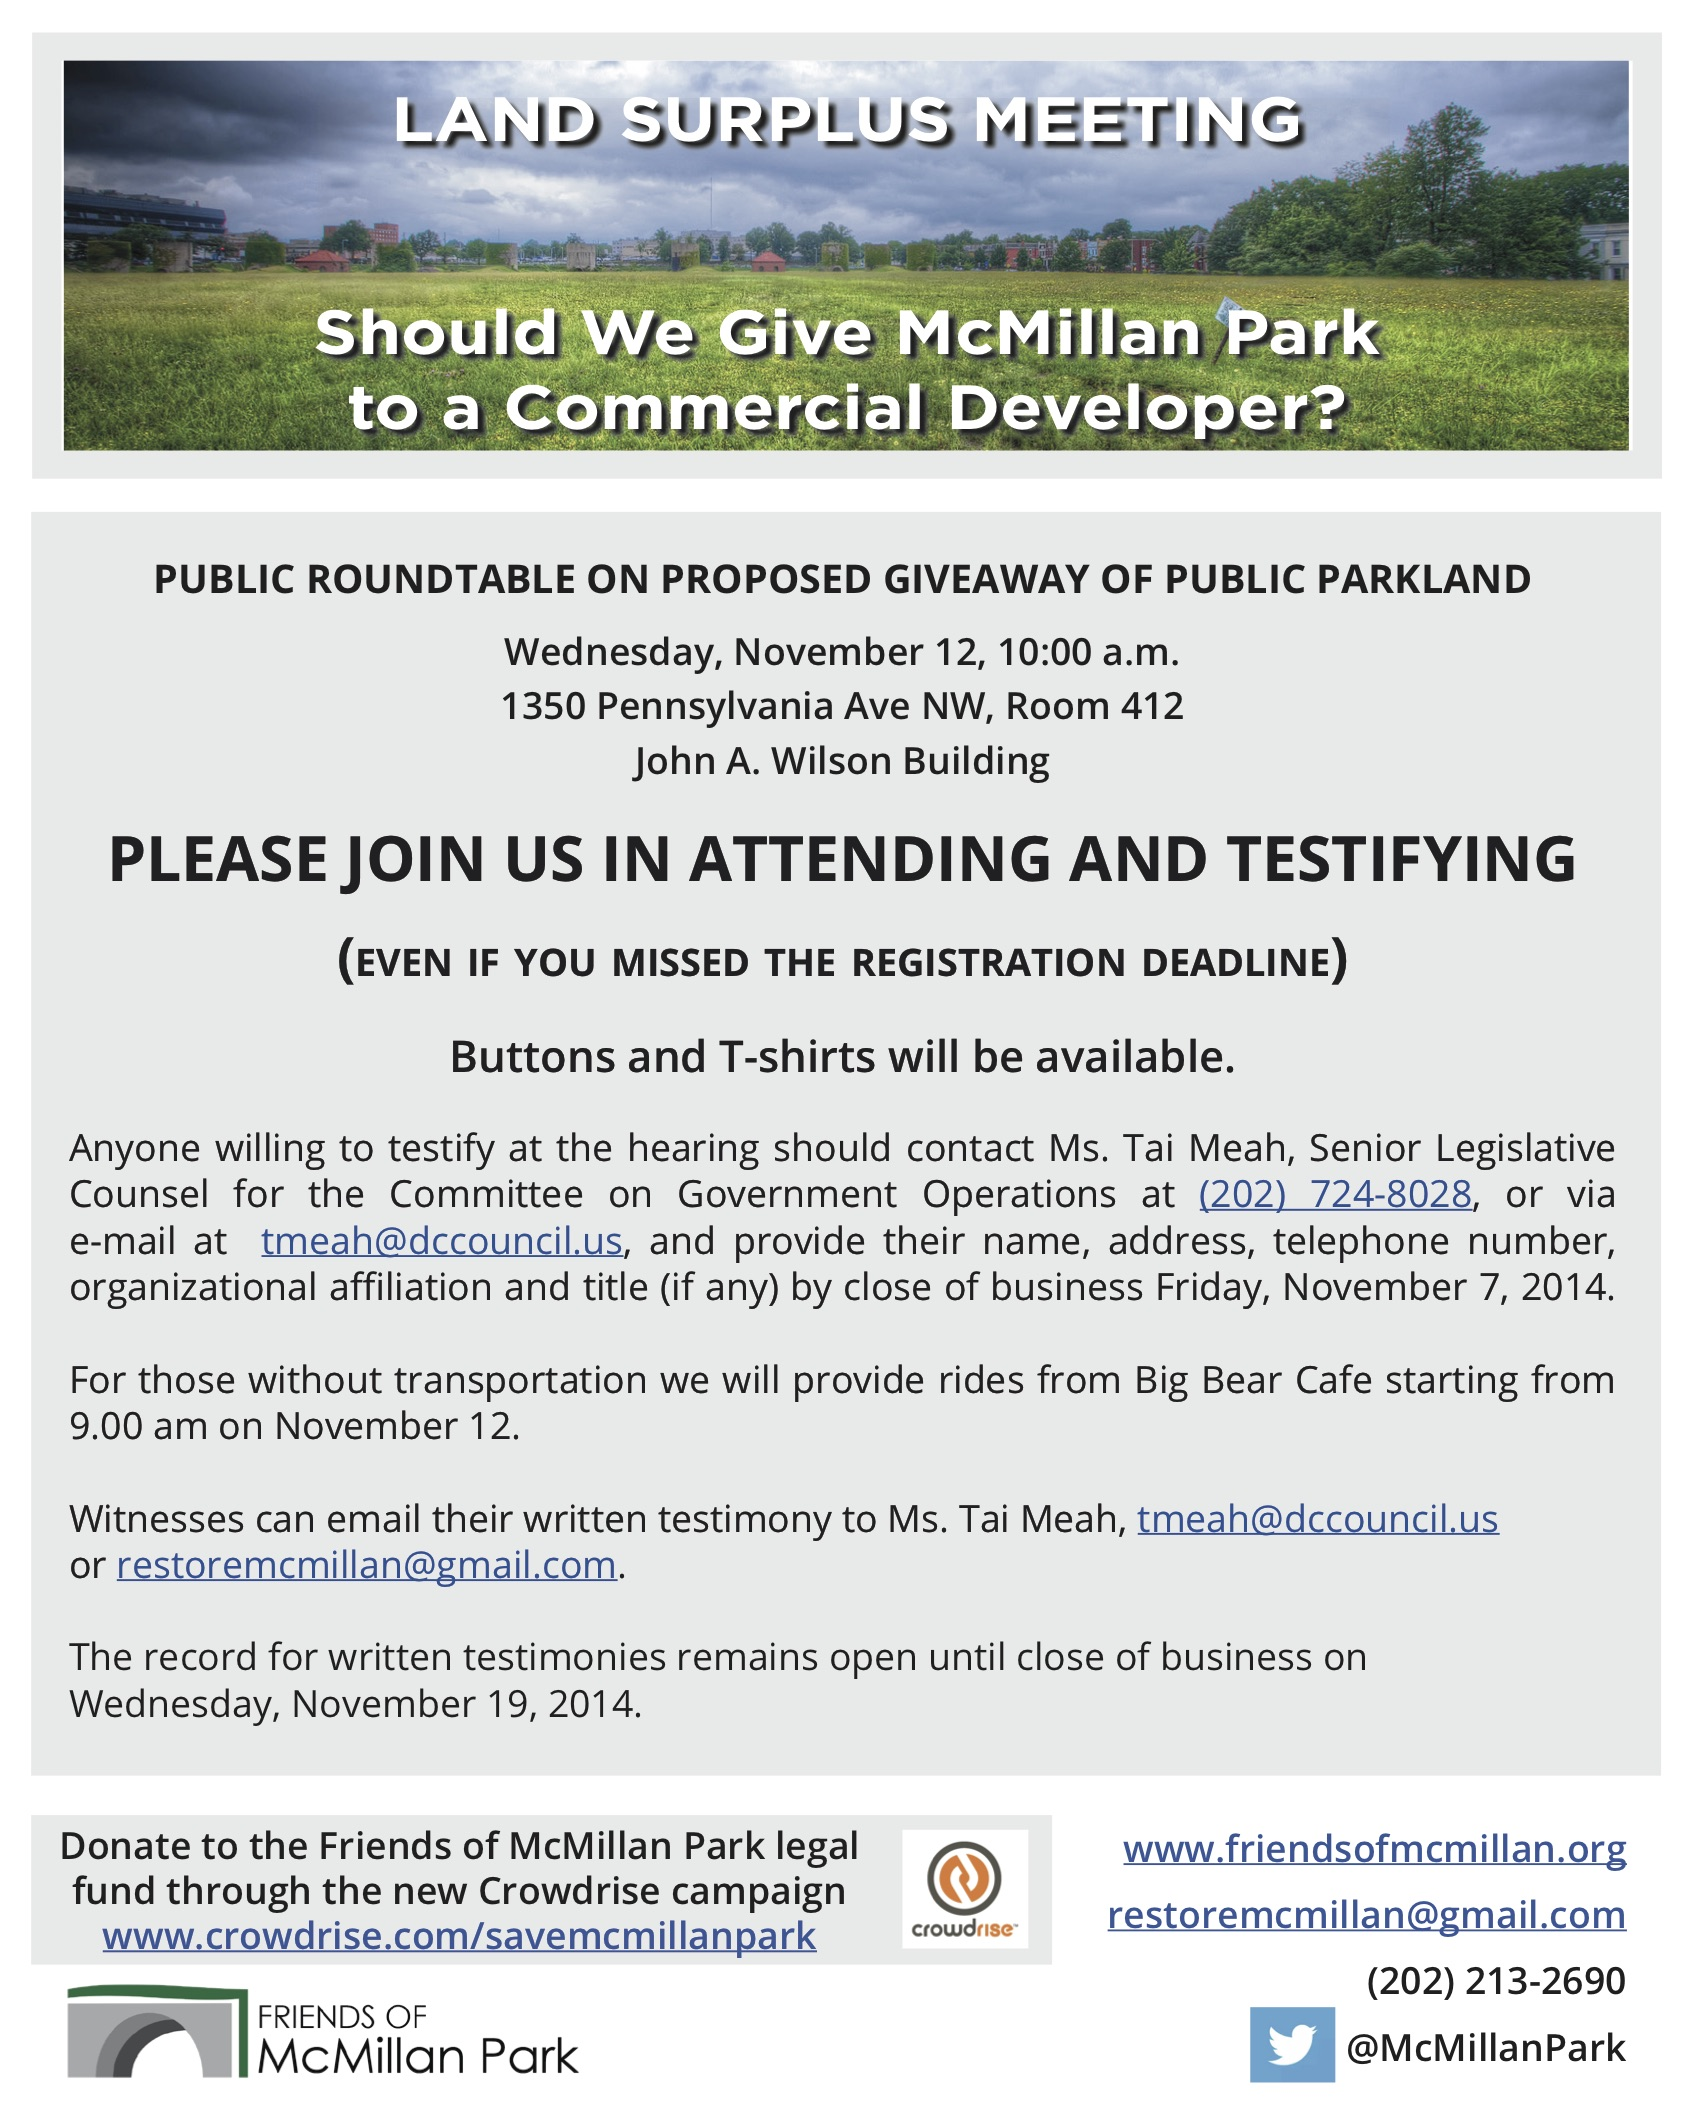 McMillan Park Surplus & Disposition 12Nov2014 Roundtable Flyer